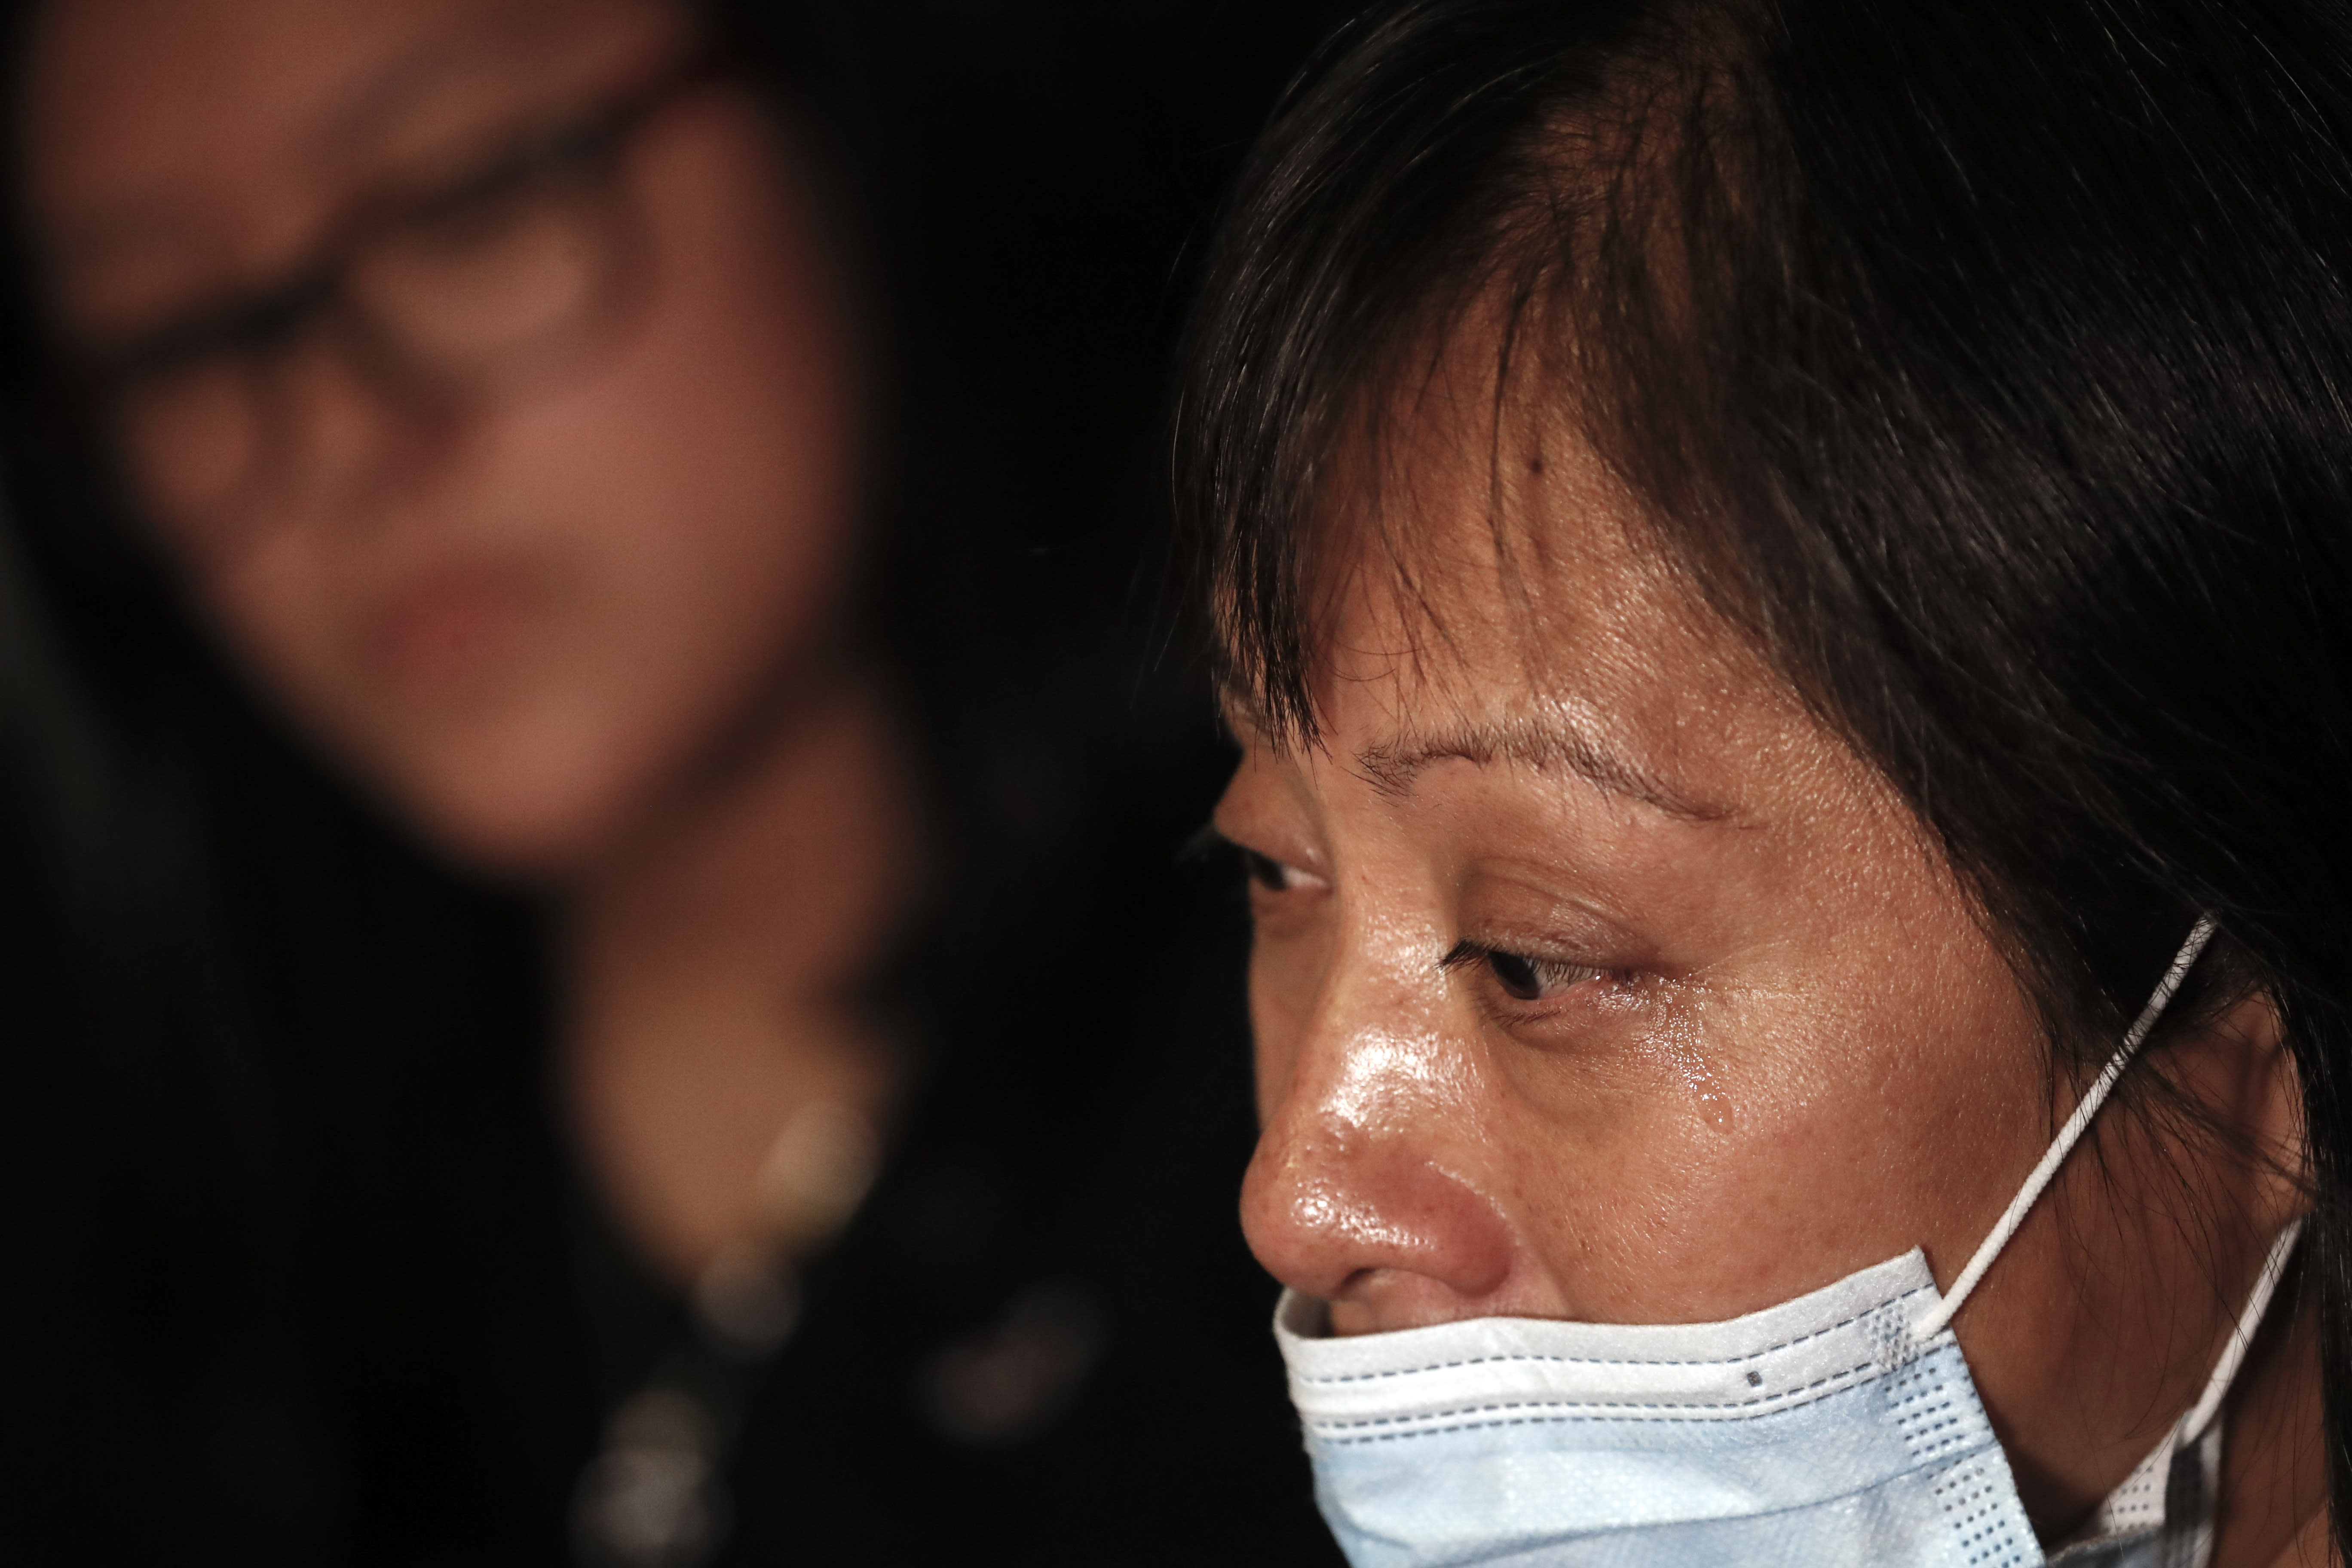 """Magnolia Ortega cries during an interview at home in Staten Island, New York, Wednesday, June 24, 2020, as she explains her bout with cancer and the fear of never seeing her daughters again. Ortega, whose cancer is in remission, says she's considering returning to her hometown of San Jeronimo Xayacatlan, Mexico but says there's no work there and that would mean one less family member sending back one less monthly check. """"If I go back,"""" she said, """"we won't have anything.'' (AP Photo/John Minchillo)"""